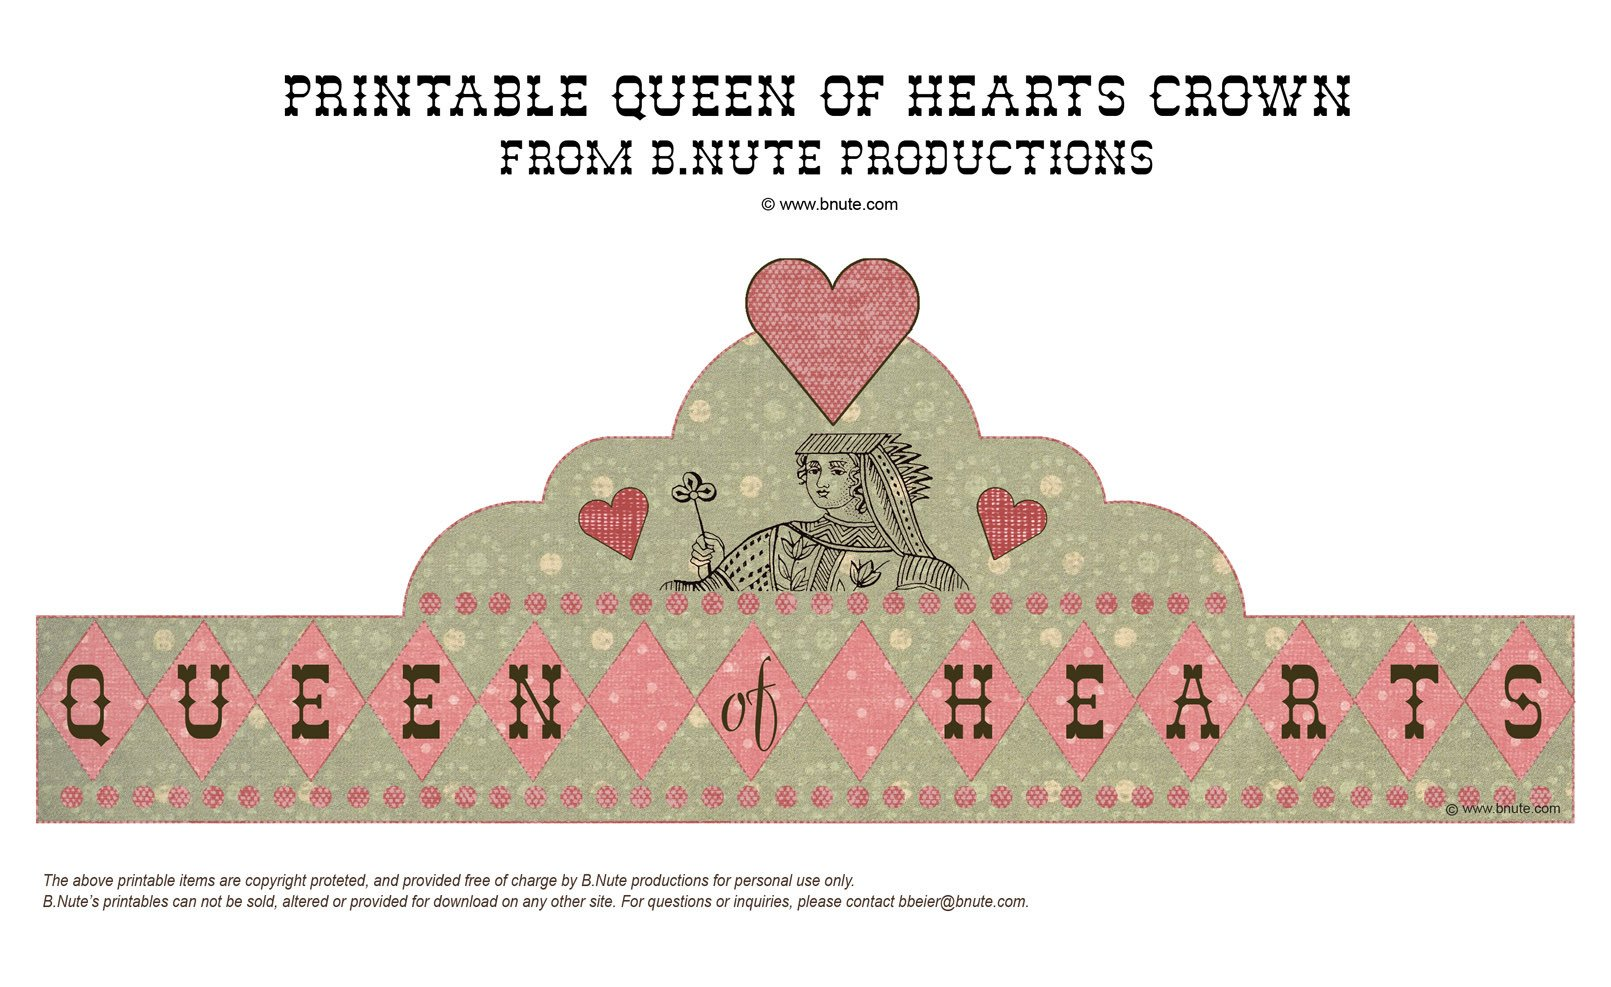 Queen Of Hearts Crown Template Bnute Productions Mad Hatter Tea Party Printable Queen